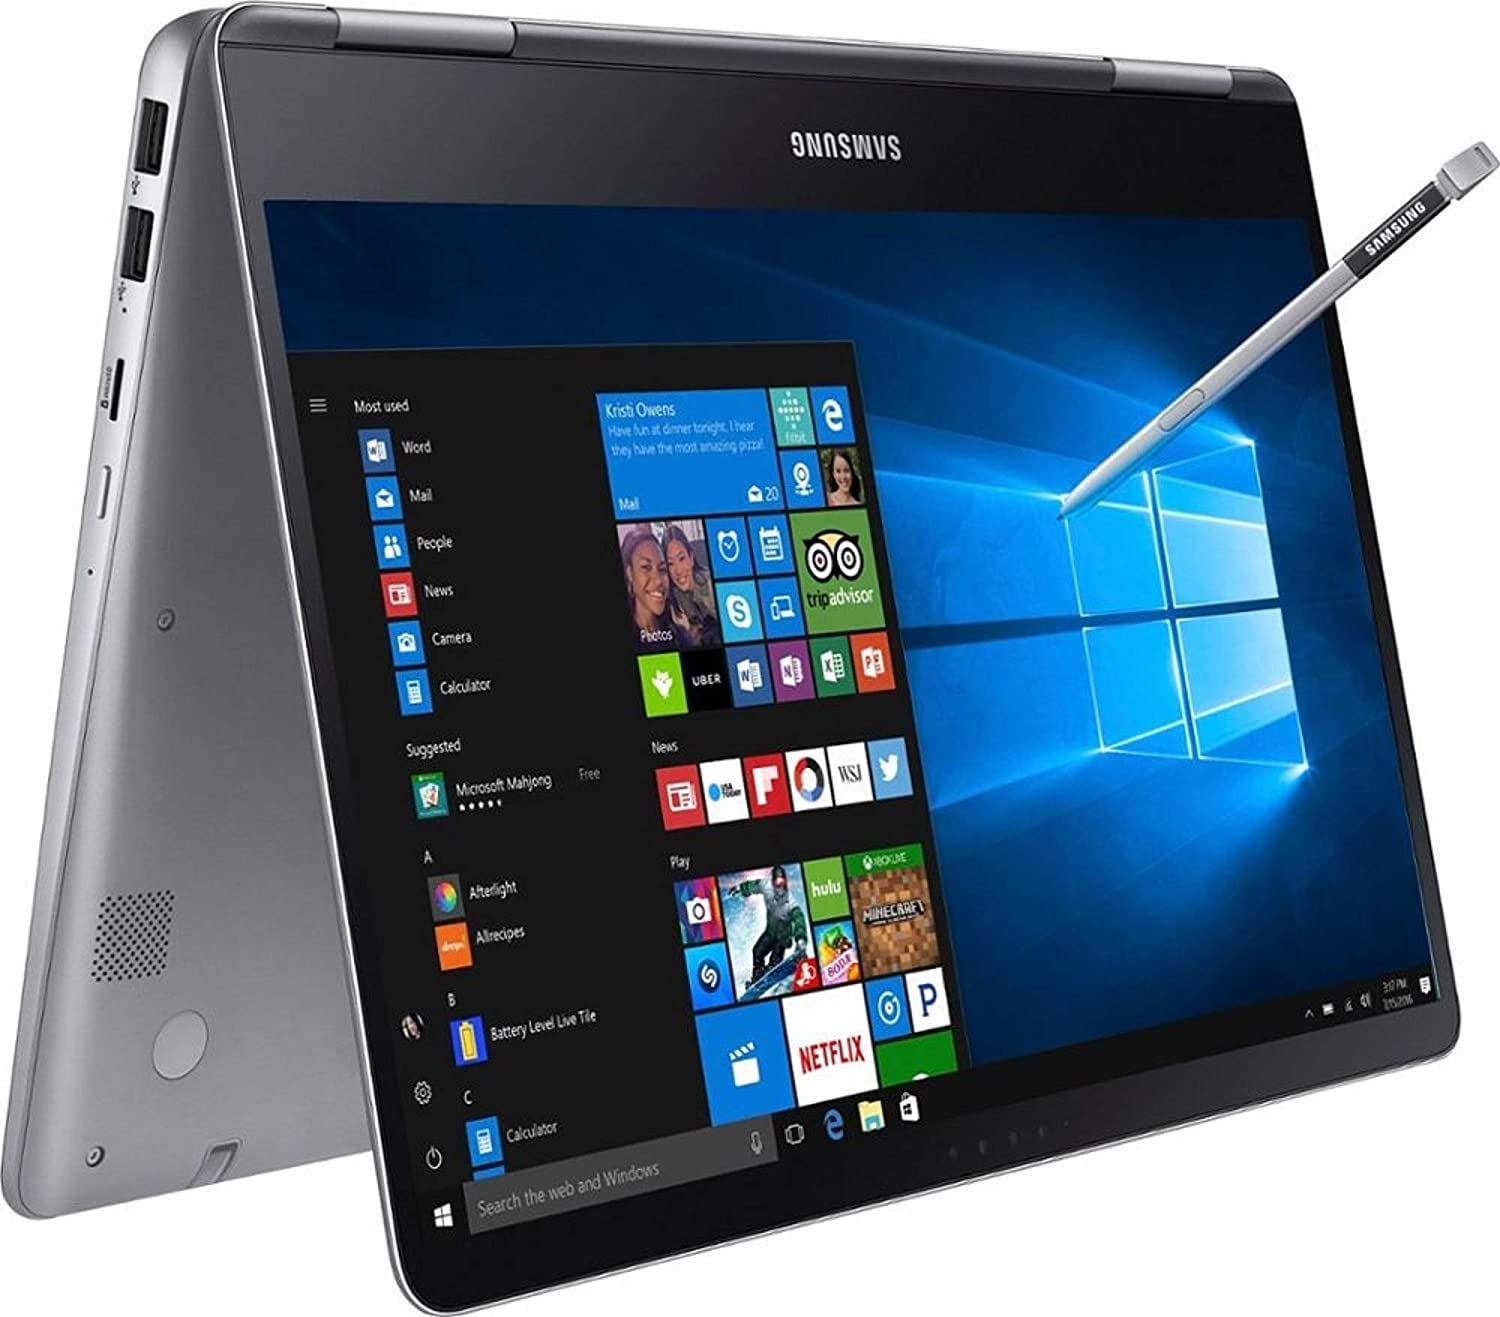 2020 Newest Samsung Notebook 9 Pro 2 in 1 Laptop, 15